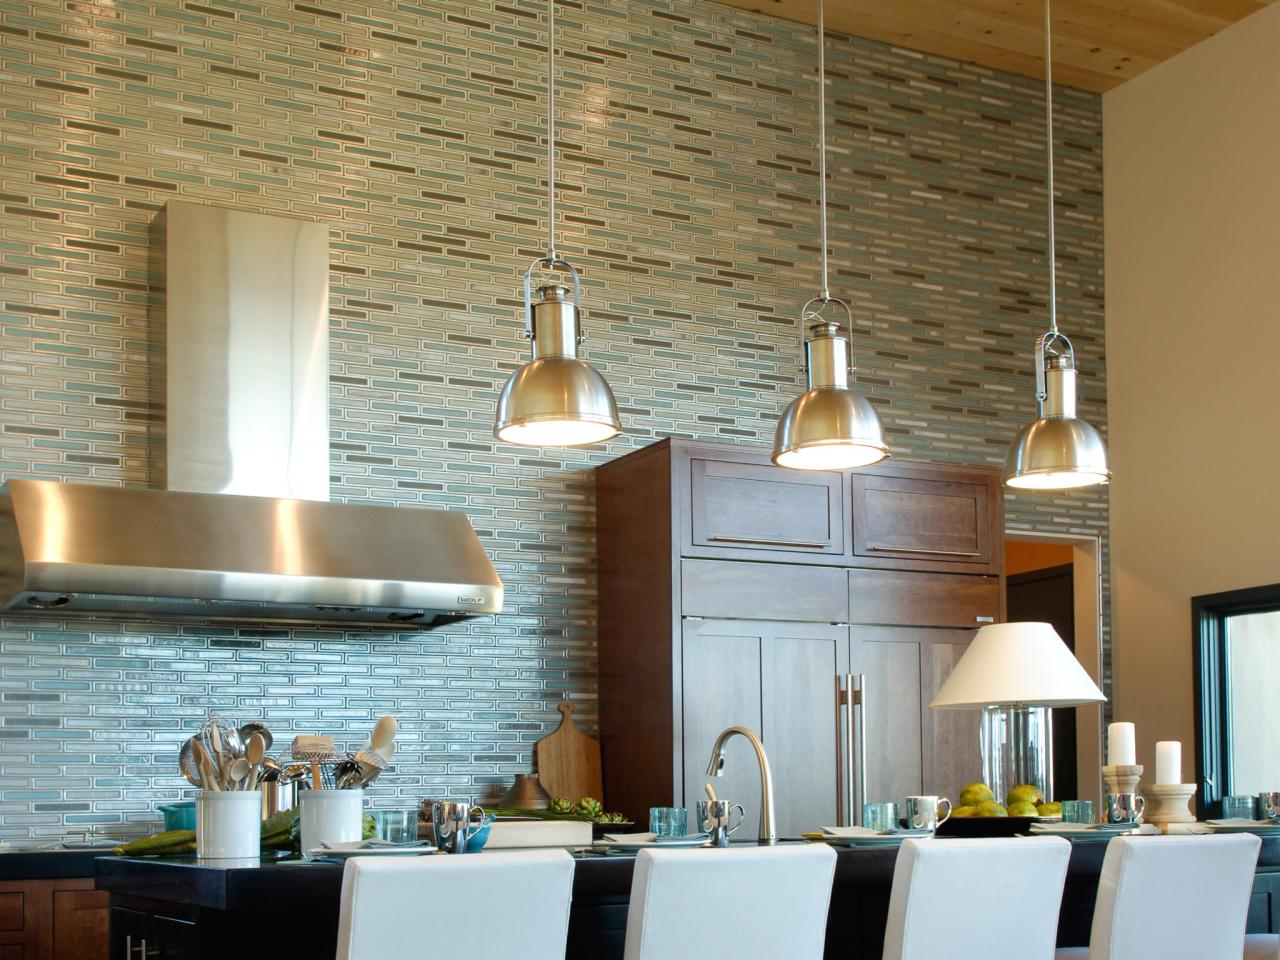 75 Kitchen Backsplash Ideas for 2020 (Tile, Glass, Metal etc.)